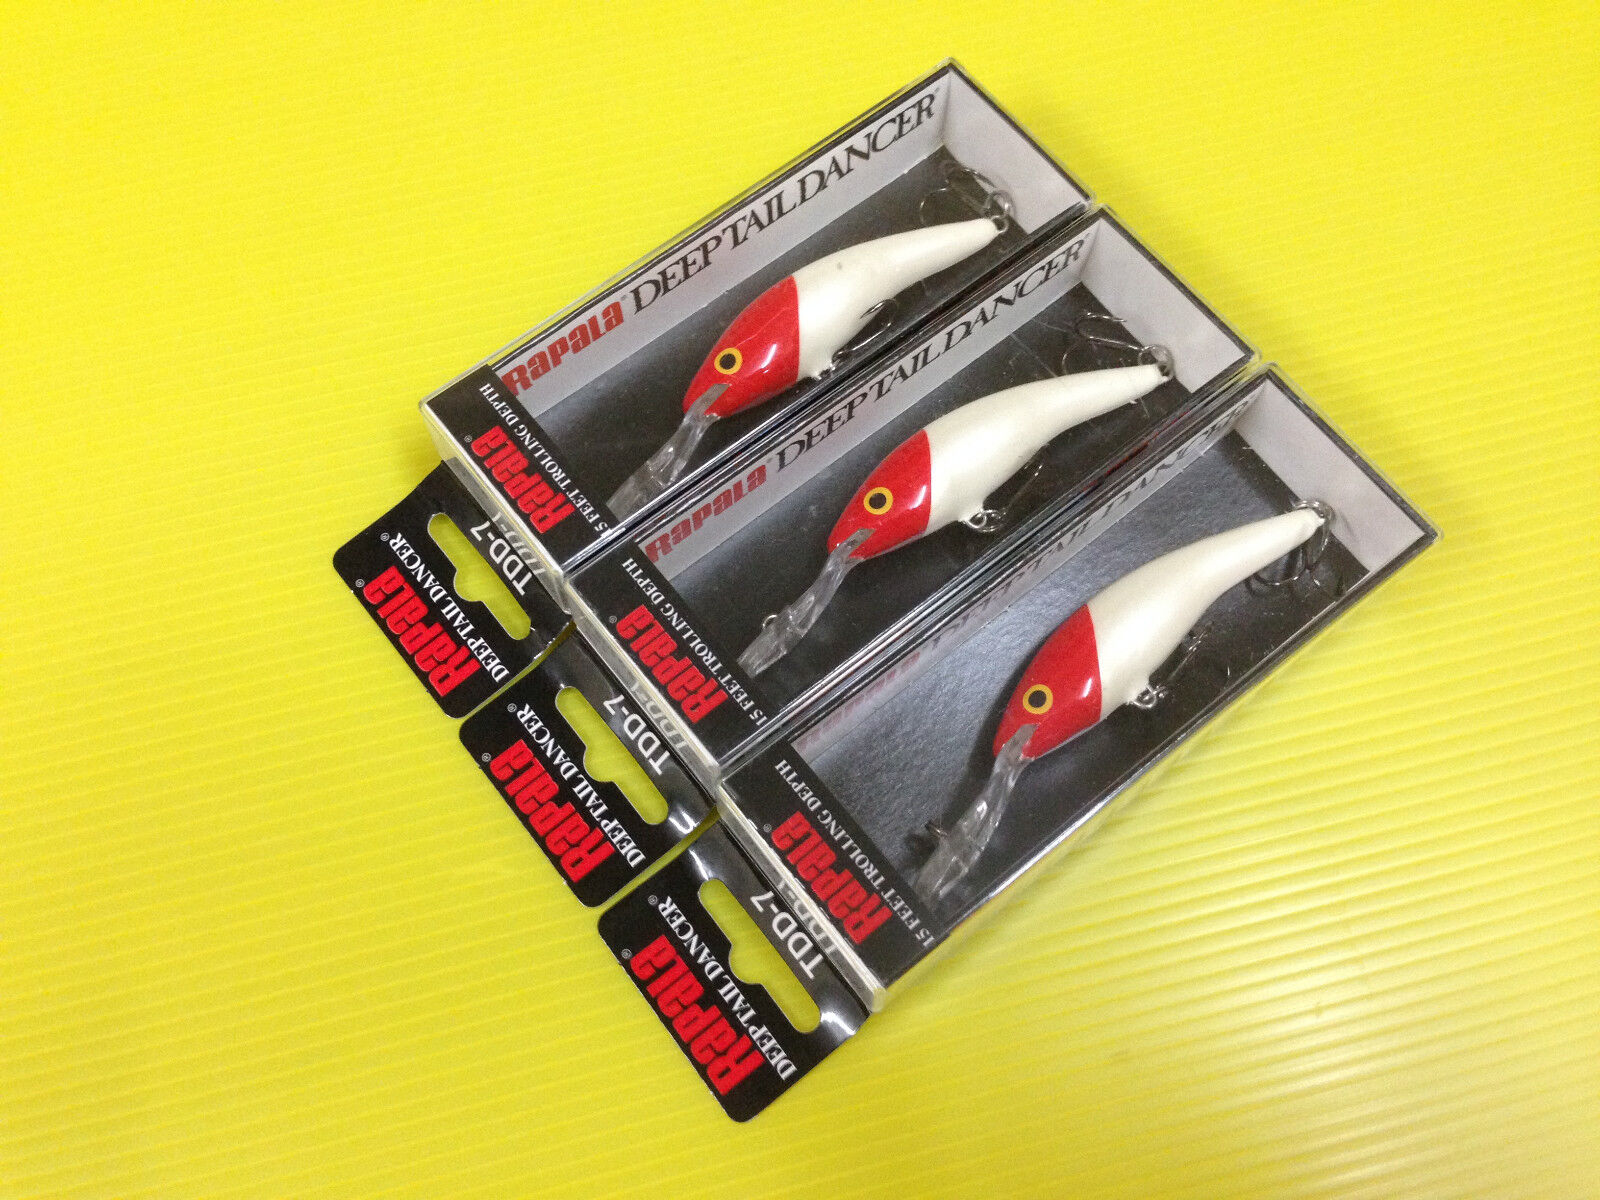 Three Rapala Deep Tail Dancer TDD-7 RH, Red Head color Rattling Lures.